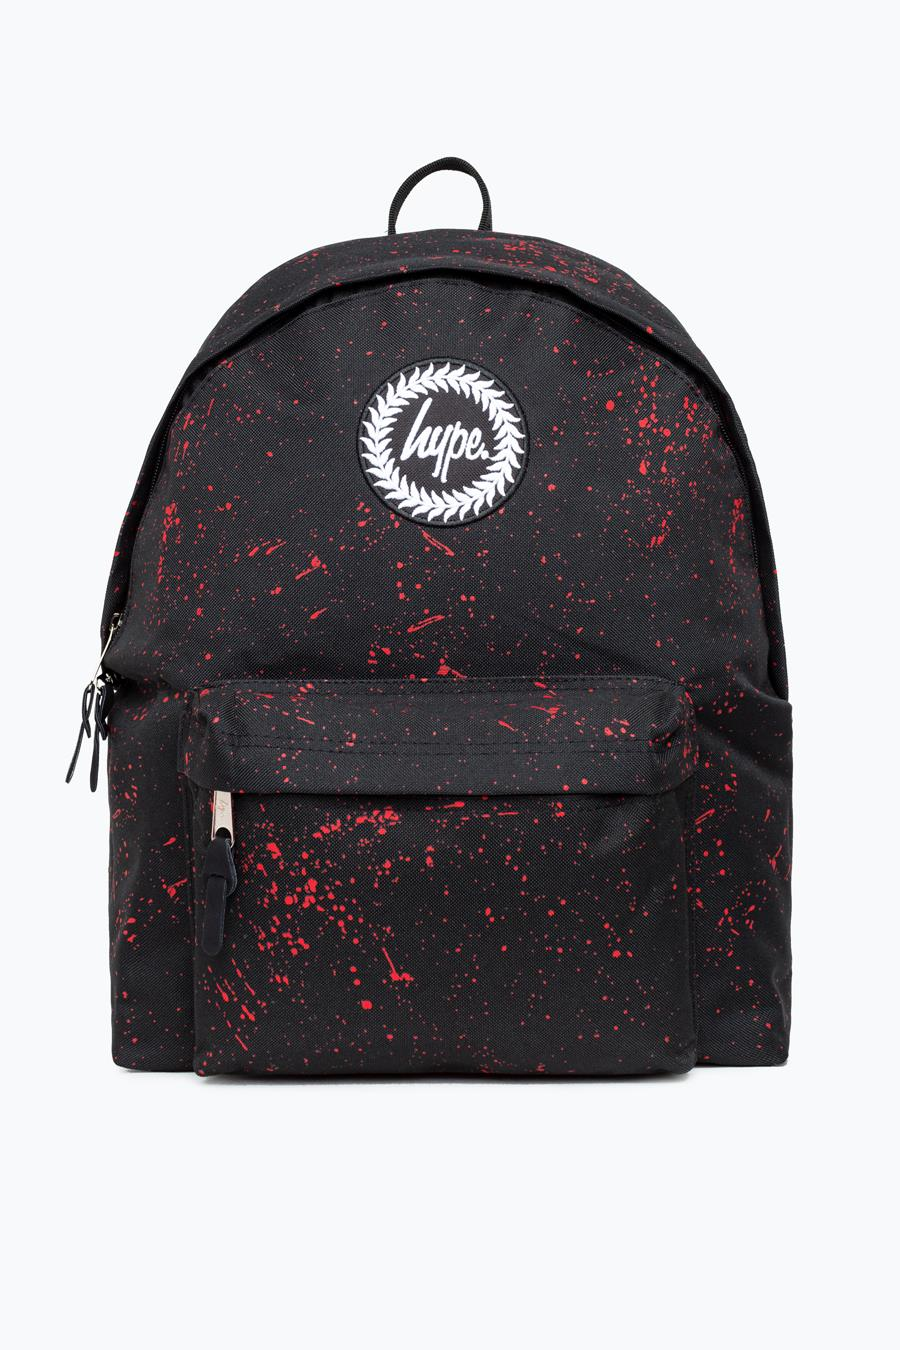 2018 sneakers cost charm los angeles HYPE BLACK WITH RED SPECKLE BACKPACK | Justhype ltd